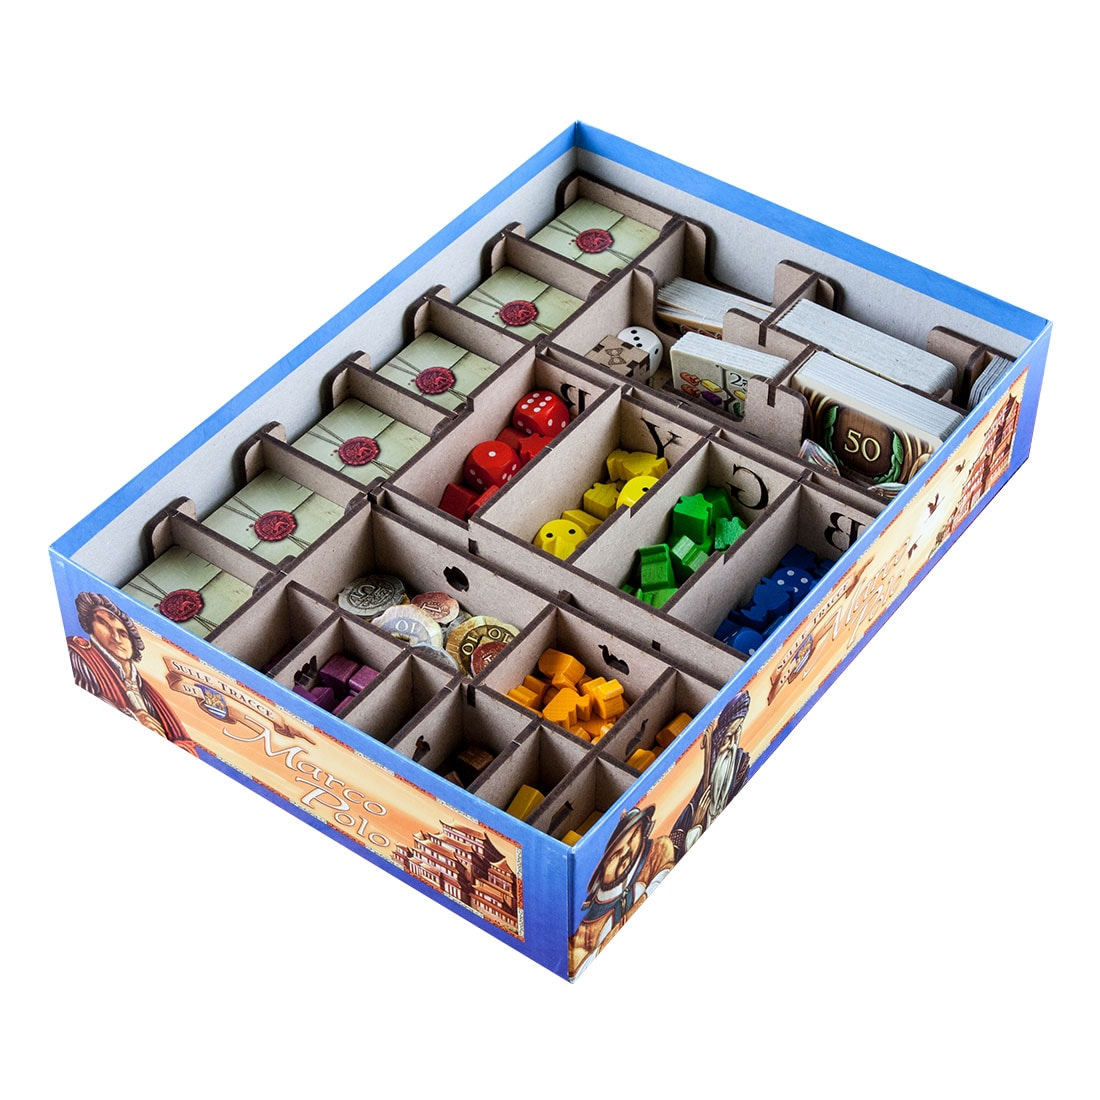 The Voyages of Marco Polo Organizer Insert - 2